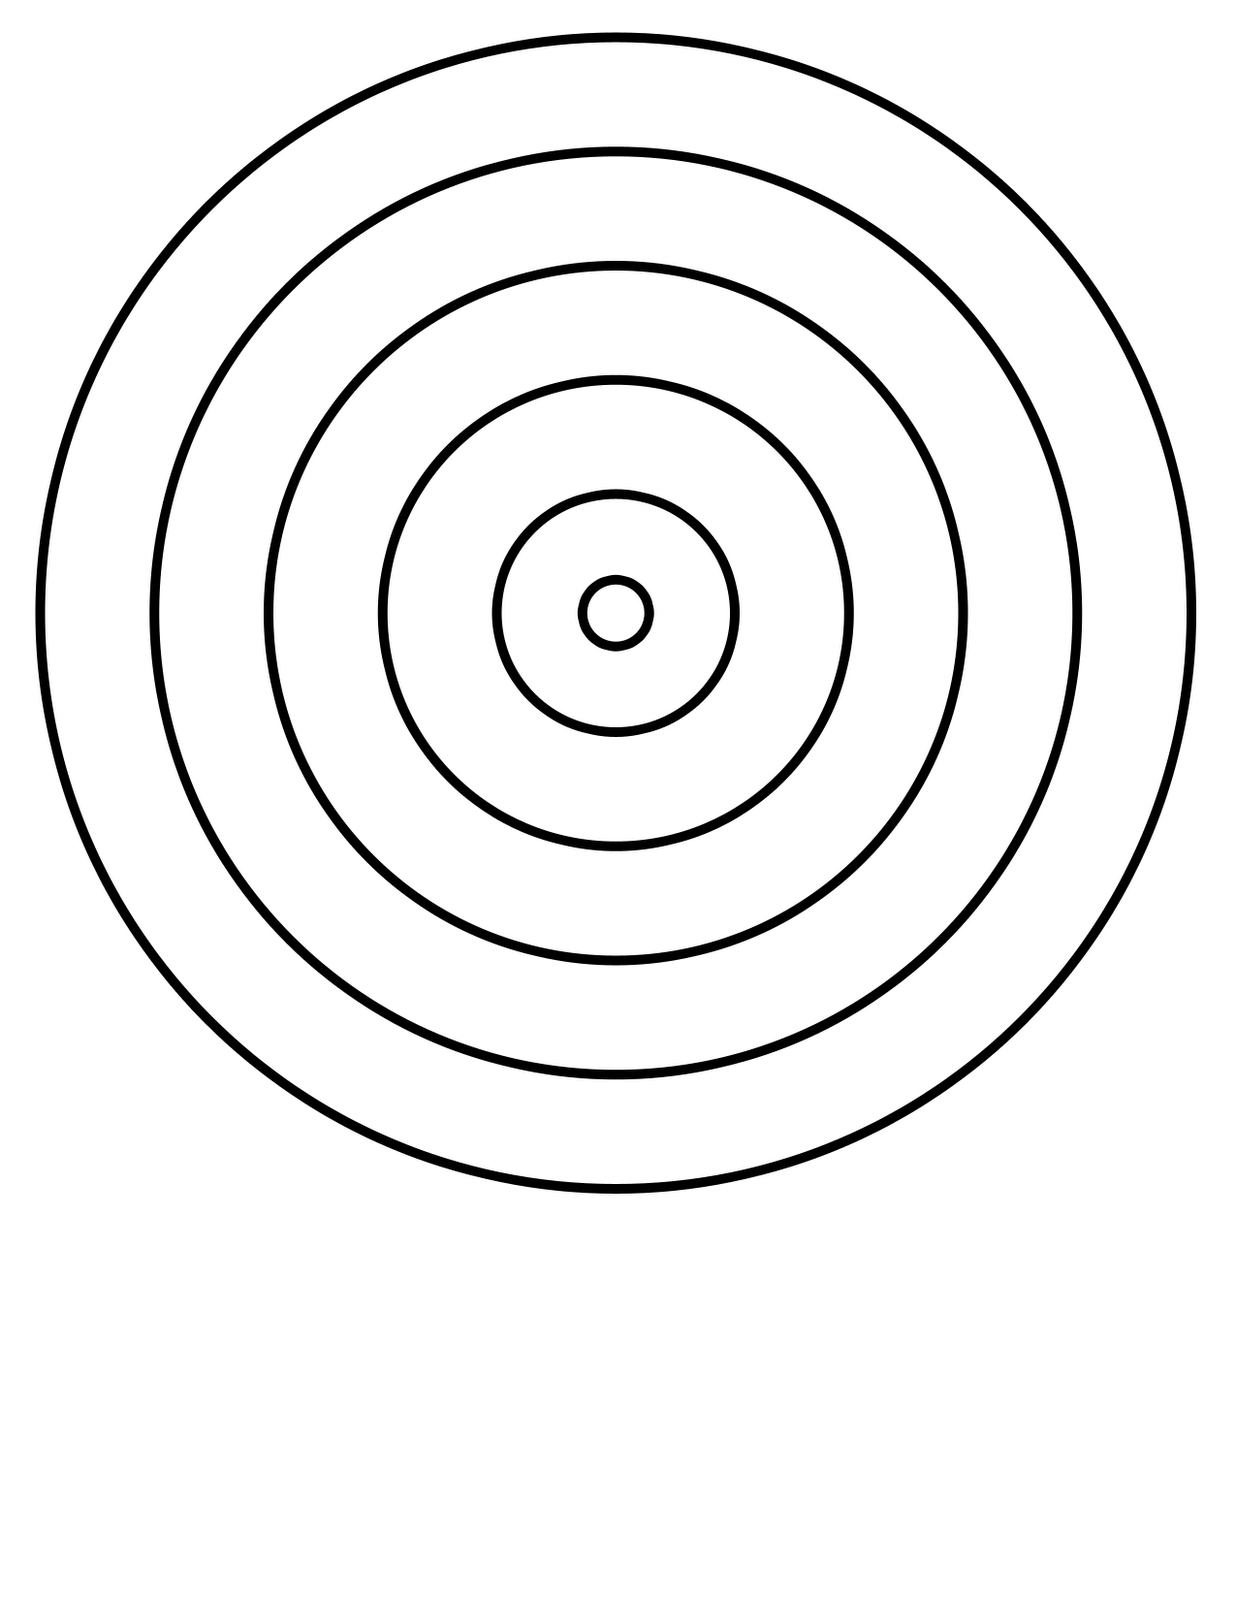 target coloring pages | Printable W No Bullseye Clip Art At Clker Com Vector | Dog ...